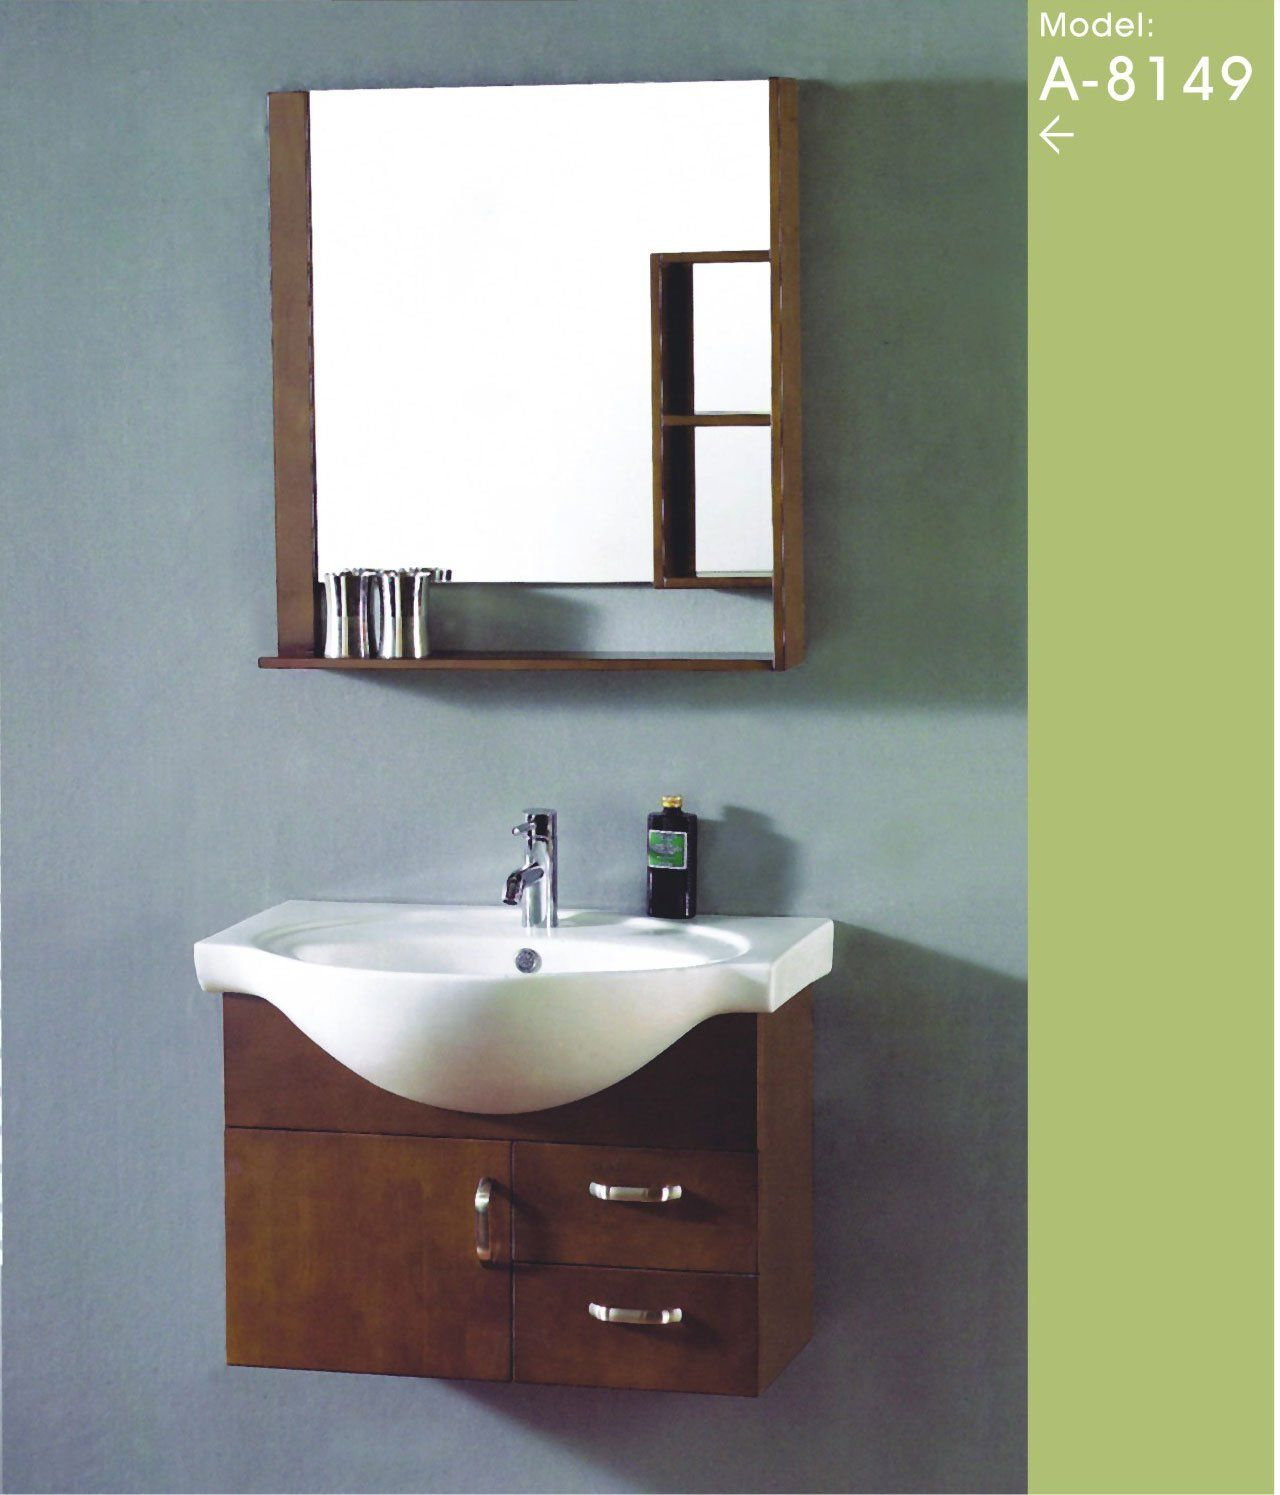 compact bathroom vanity small bathroom cabinet china mainland bathroom vanities - Bathroom Cabinets Small